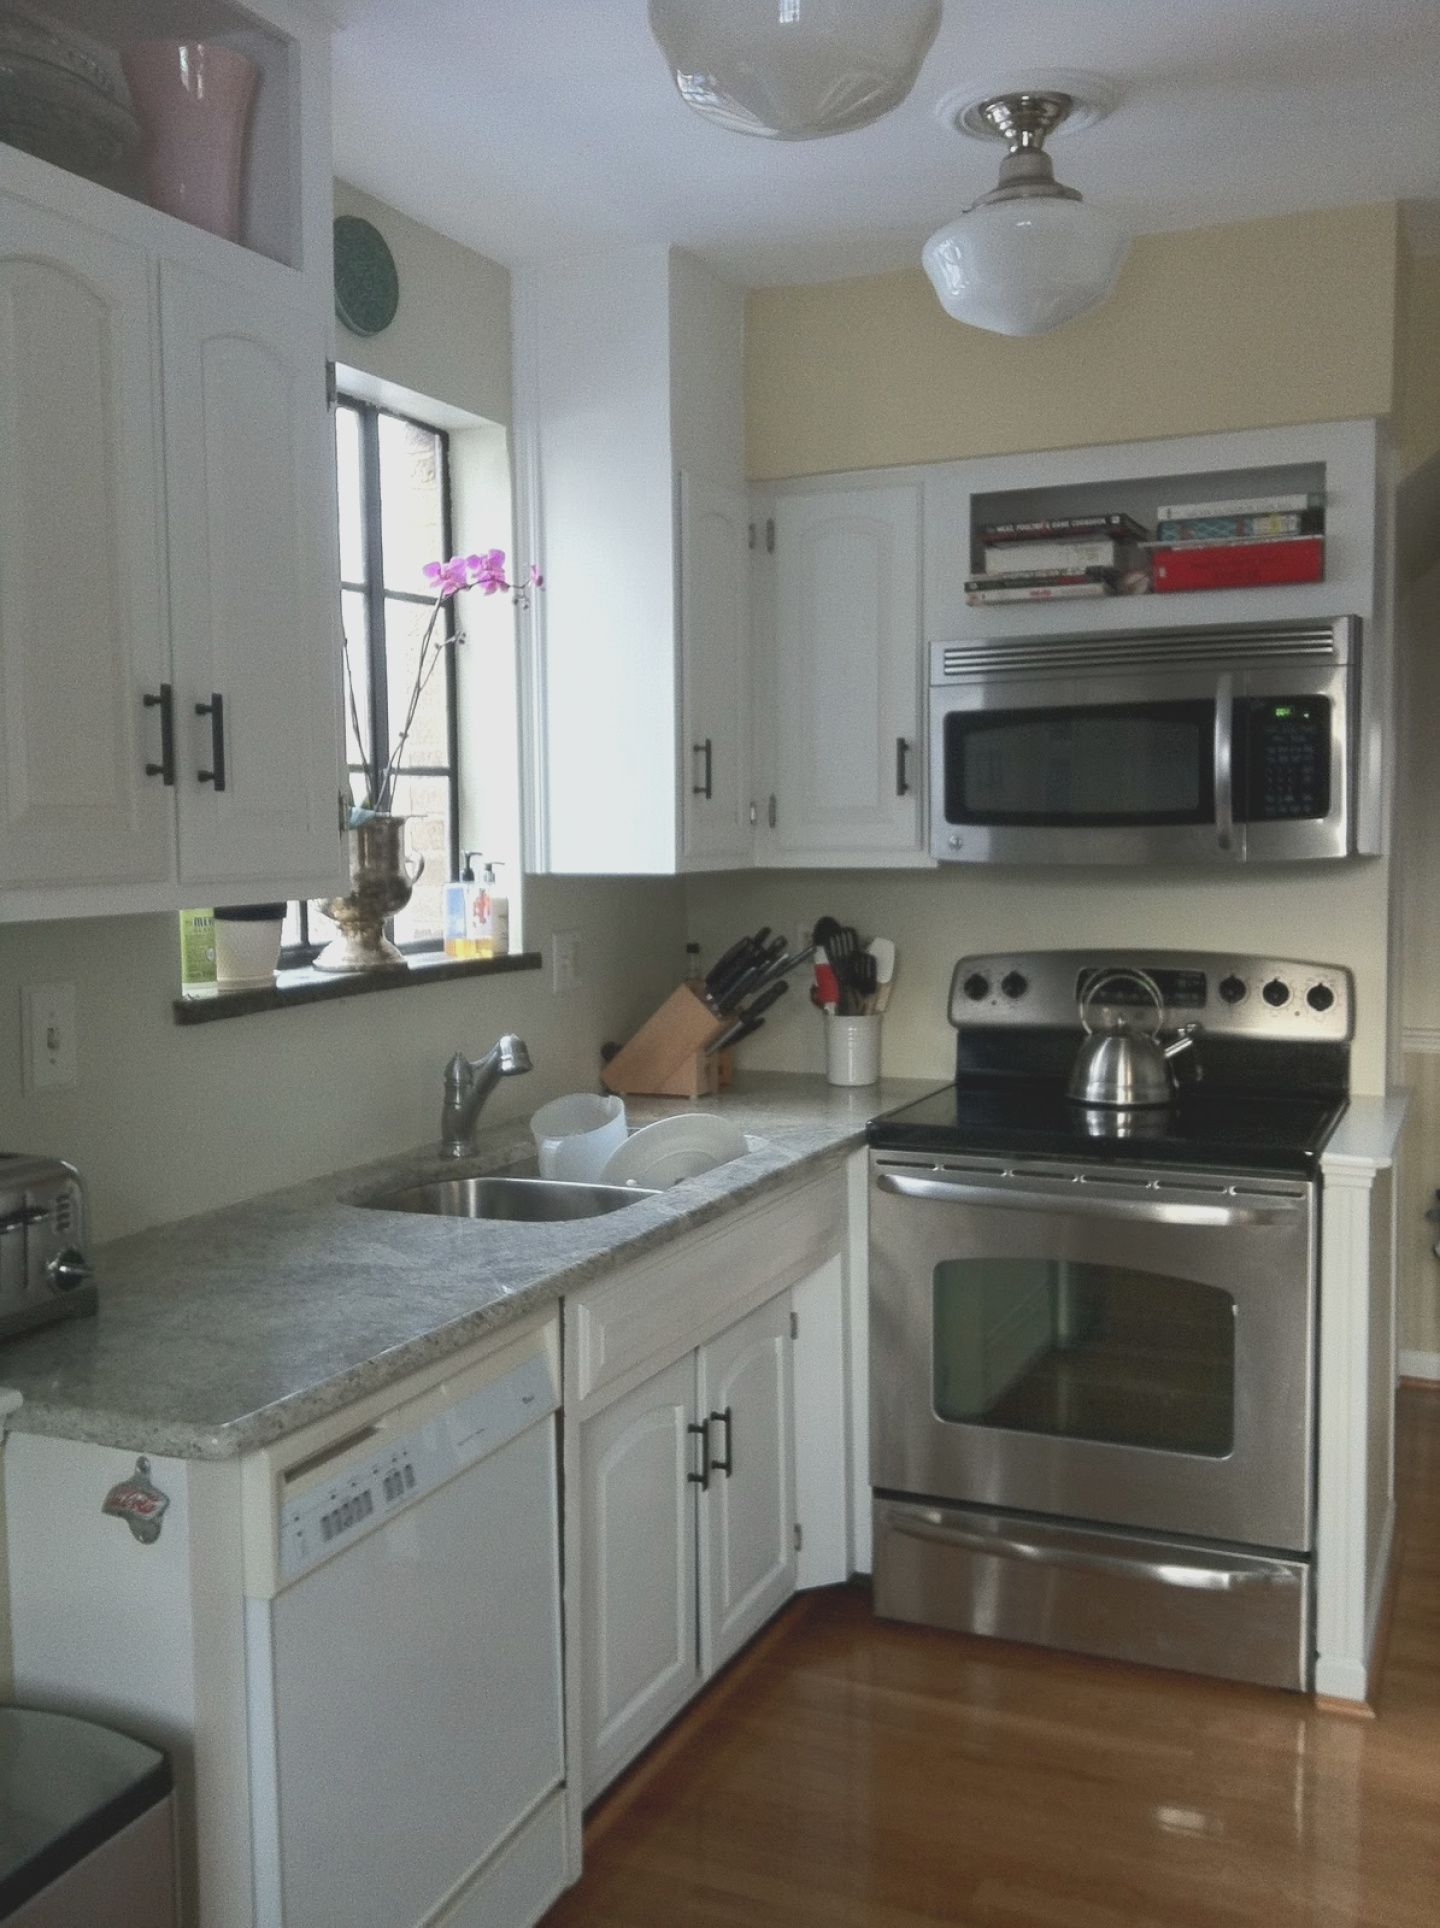 Low Cost Simple Kitchen Designs : simple, kitchen, designs, Modern, Simple, Small, Space, Budget, Kitchen, Design, WOWHOMY